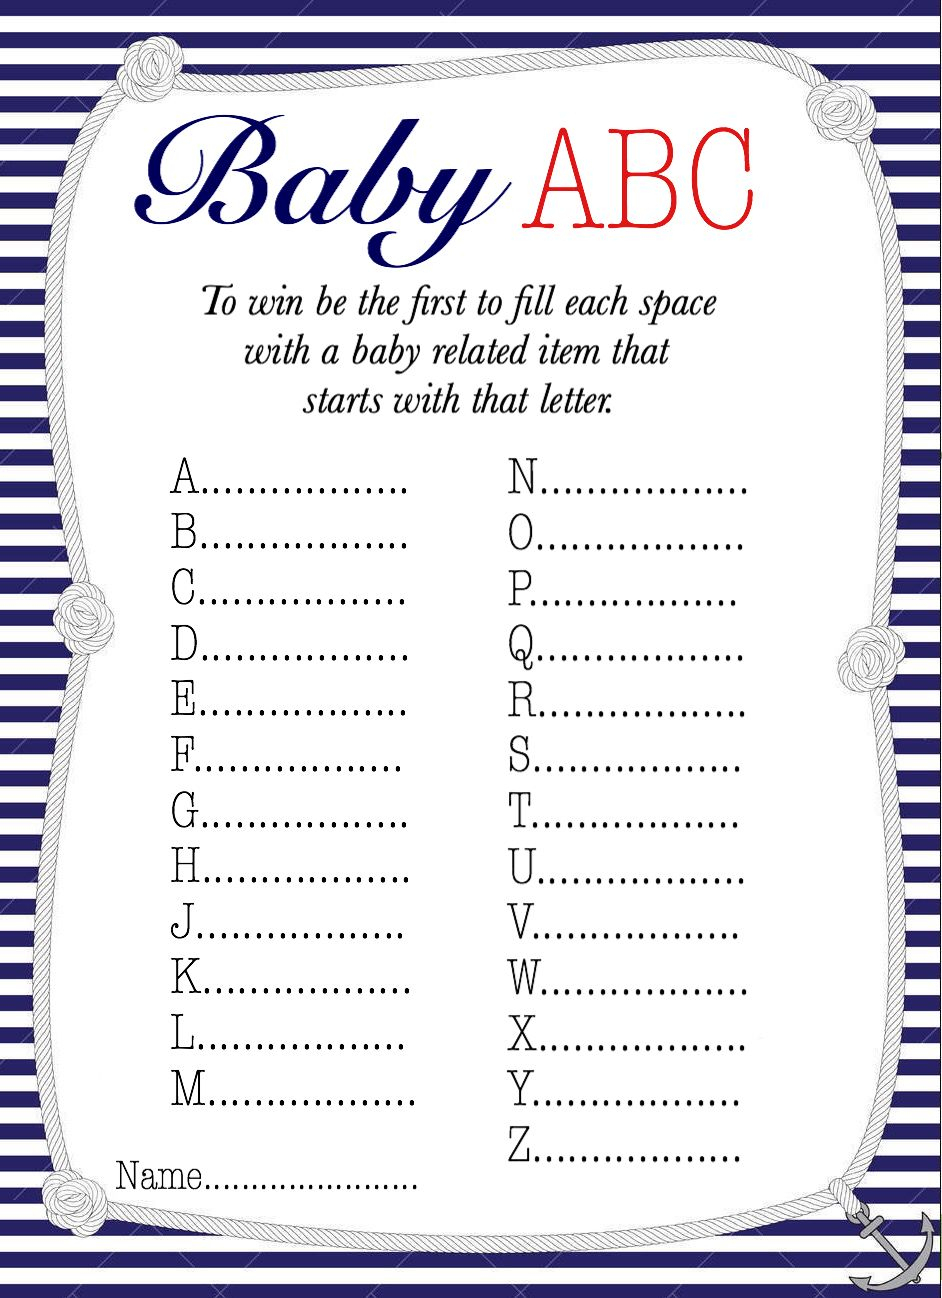 50+ Free Baby Shower Printables For A Perfect Party - Page 21 - Free Printable Templates For Baby Shower Games